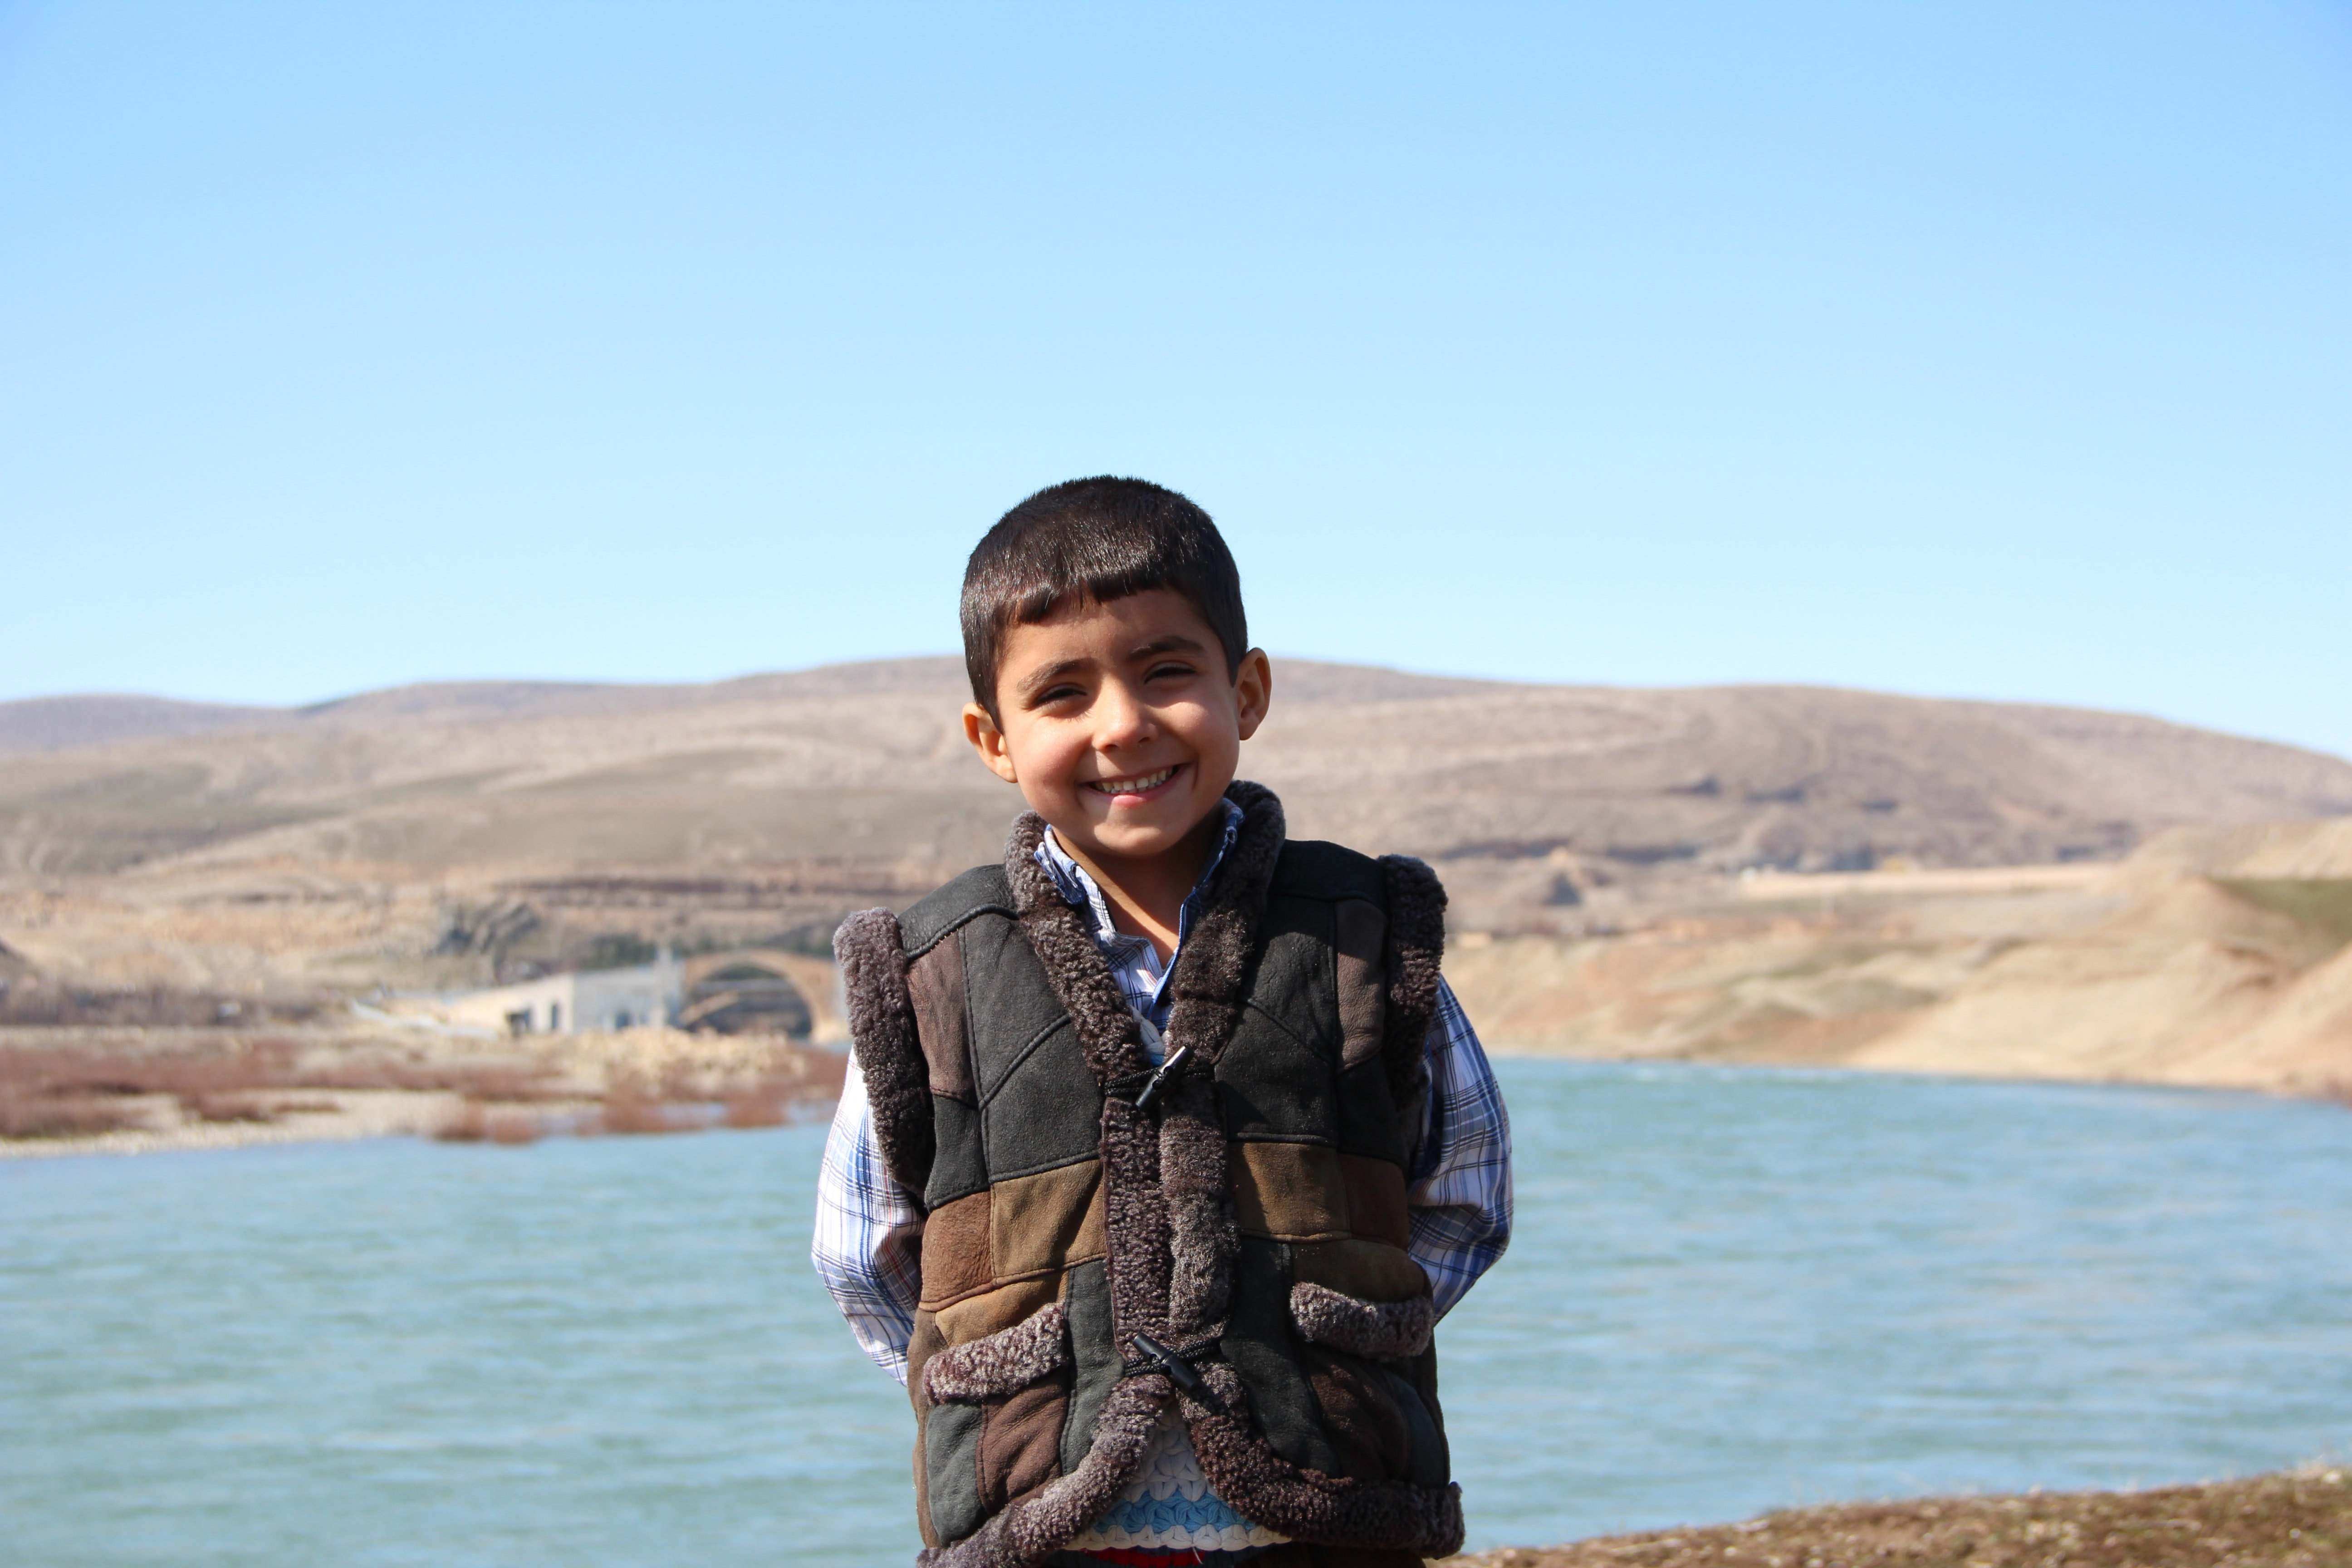 boy standing in front of body of water